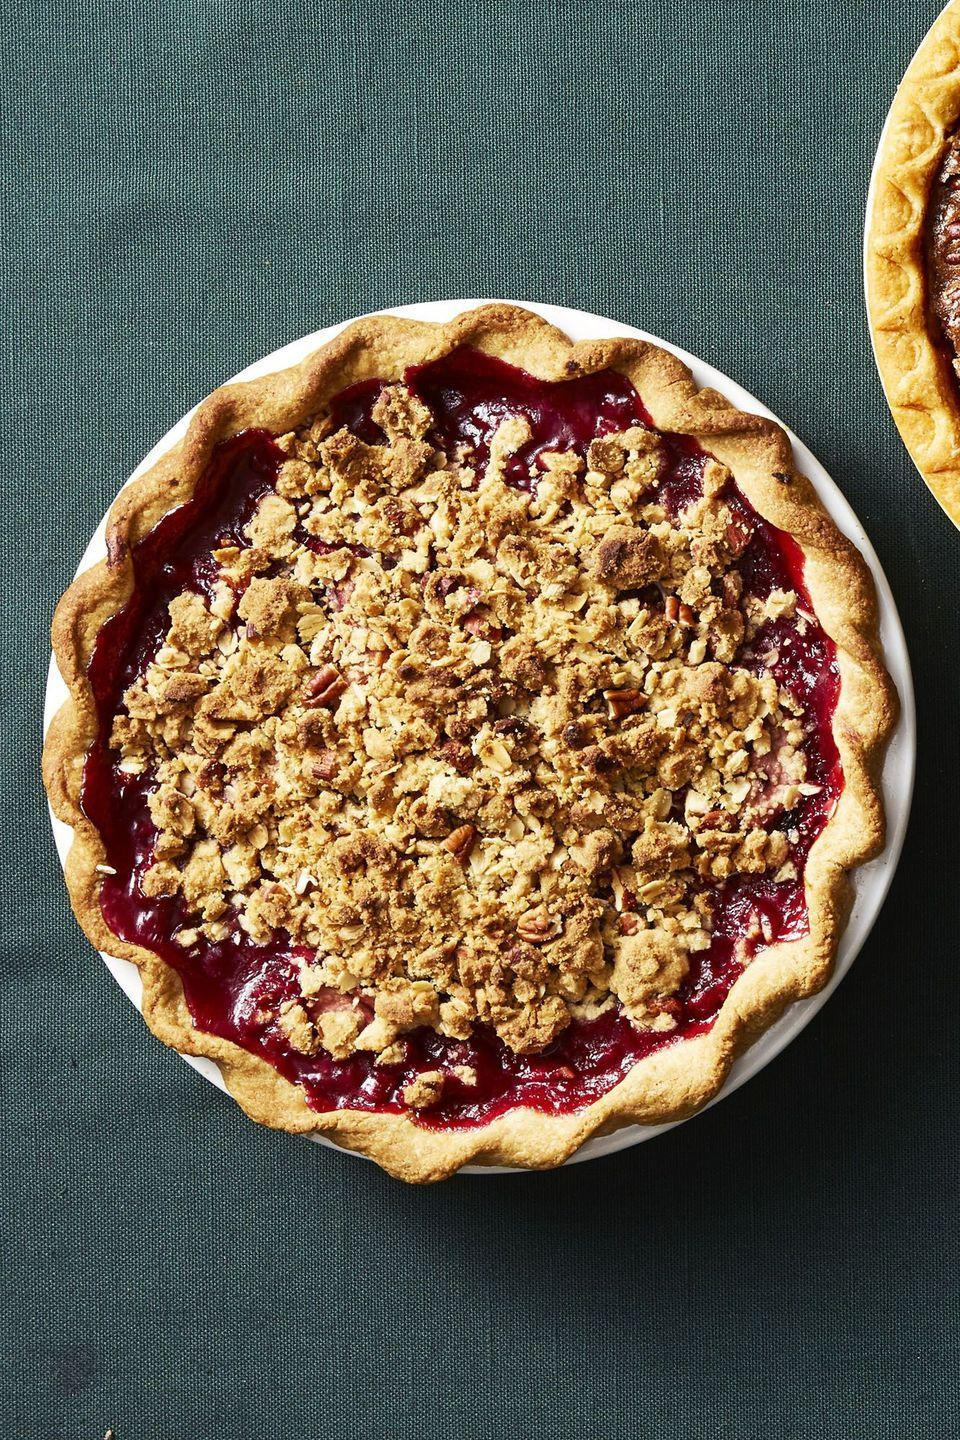 "<p>Skip the complicated lattice and opt for this easy crumb topping instead. </p><p><a href=""https://www.goodhousekeeping.com/food-recipes/dessert/a34579/harvest-pear-blackberry-pie/"" rel=""nofollow noopener"" target=""_blank"" data-ylk=""slk:Get the recipe for Harvest Pear-Blackberry Pie »"" class=""link rapid-noclick-resp""><em>Get the recipe for Harvest Pear-Blackberry Pie »</em></a></p>"